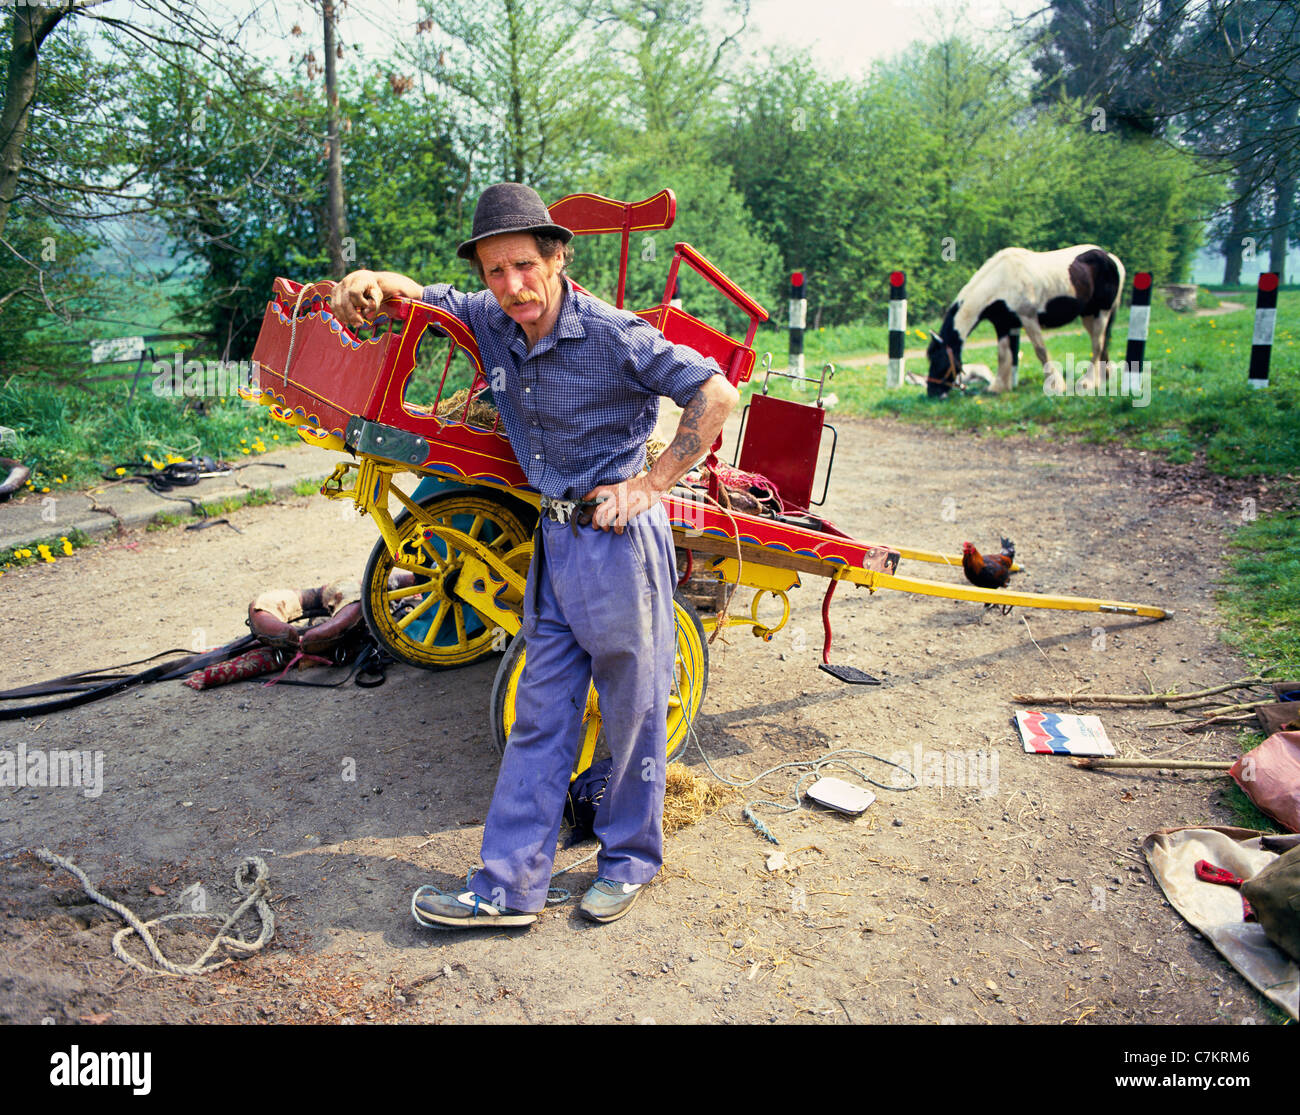 A traditional travelling gipsy with a traditional painted hand cart camped near the Cotswold village of Bourton - Stock Image